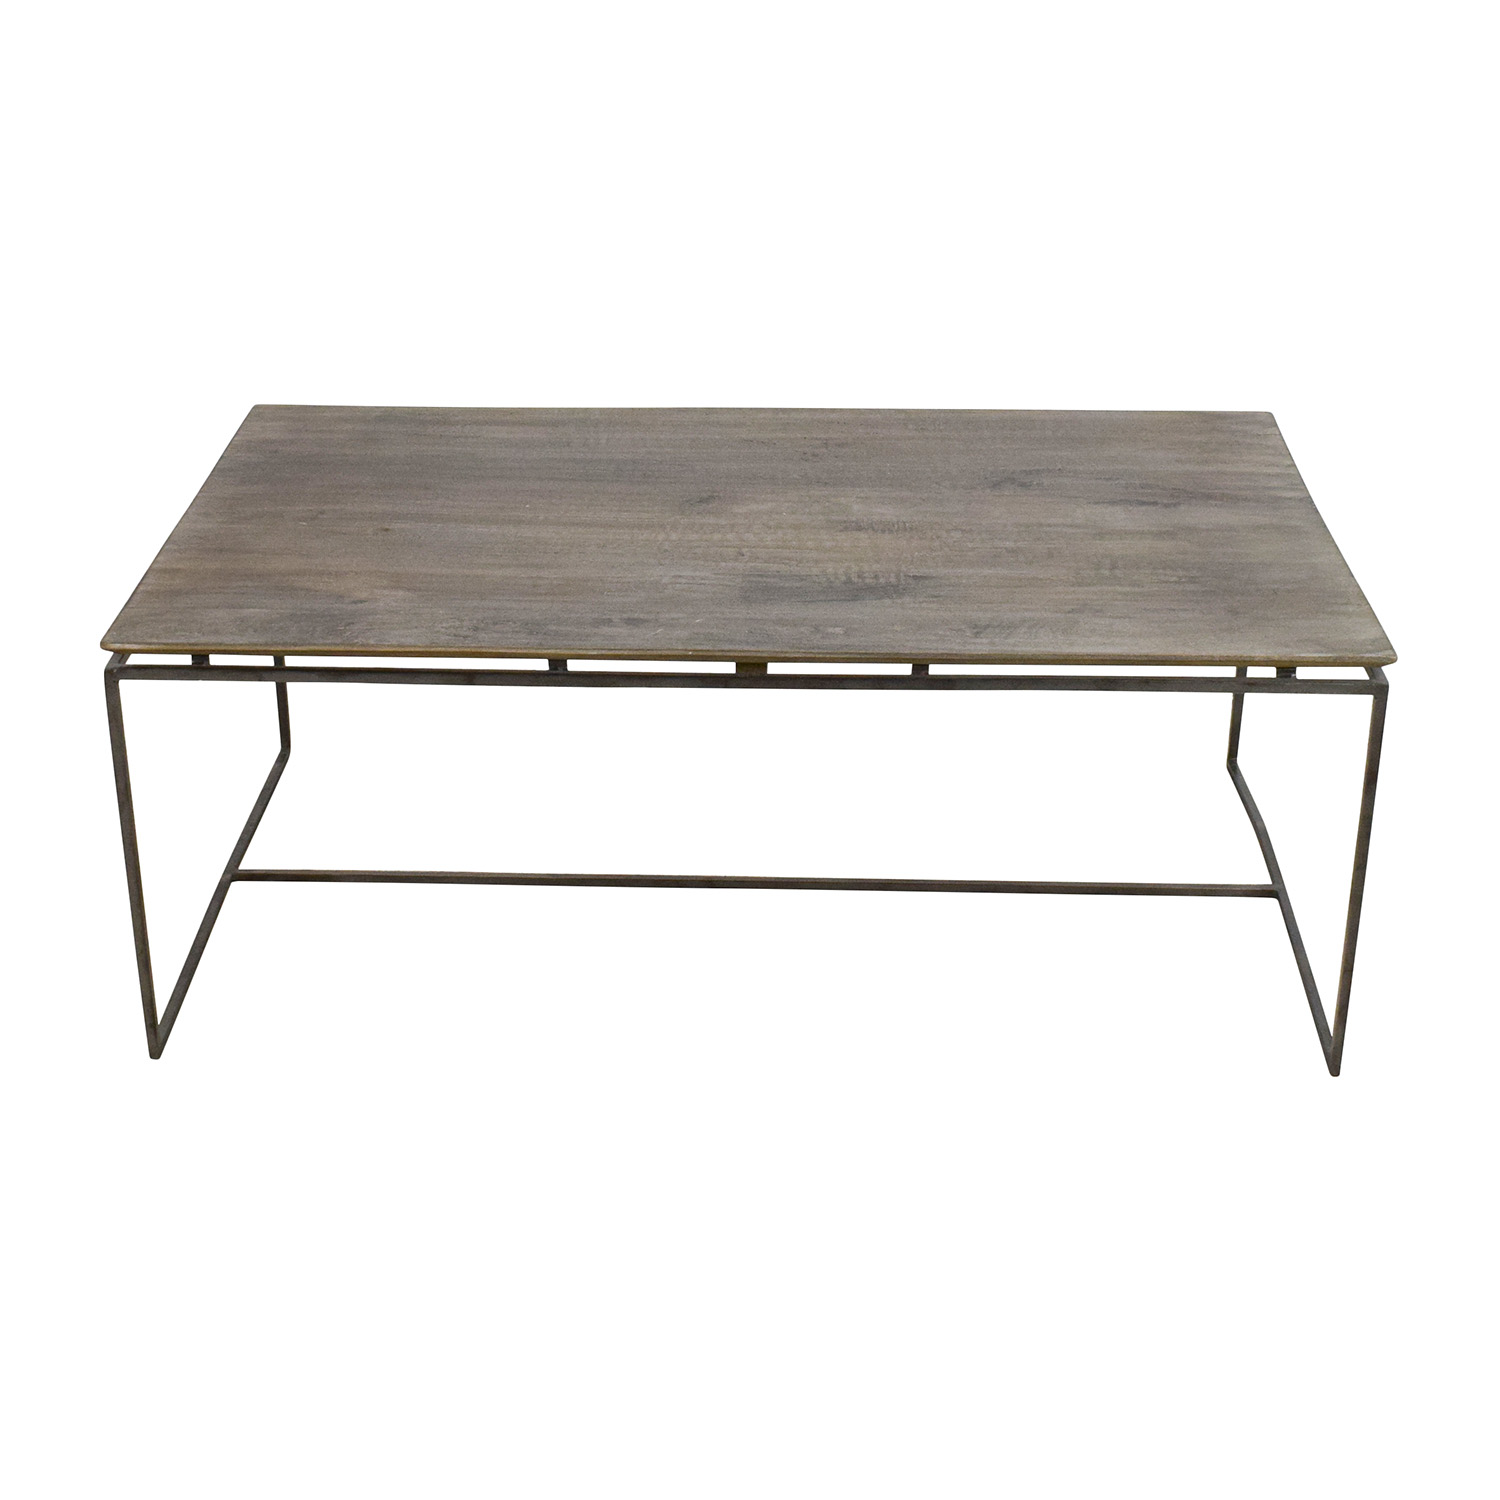 Nadeau Nadeau Wood and Iron Coffee Table